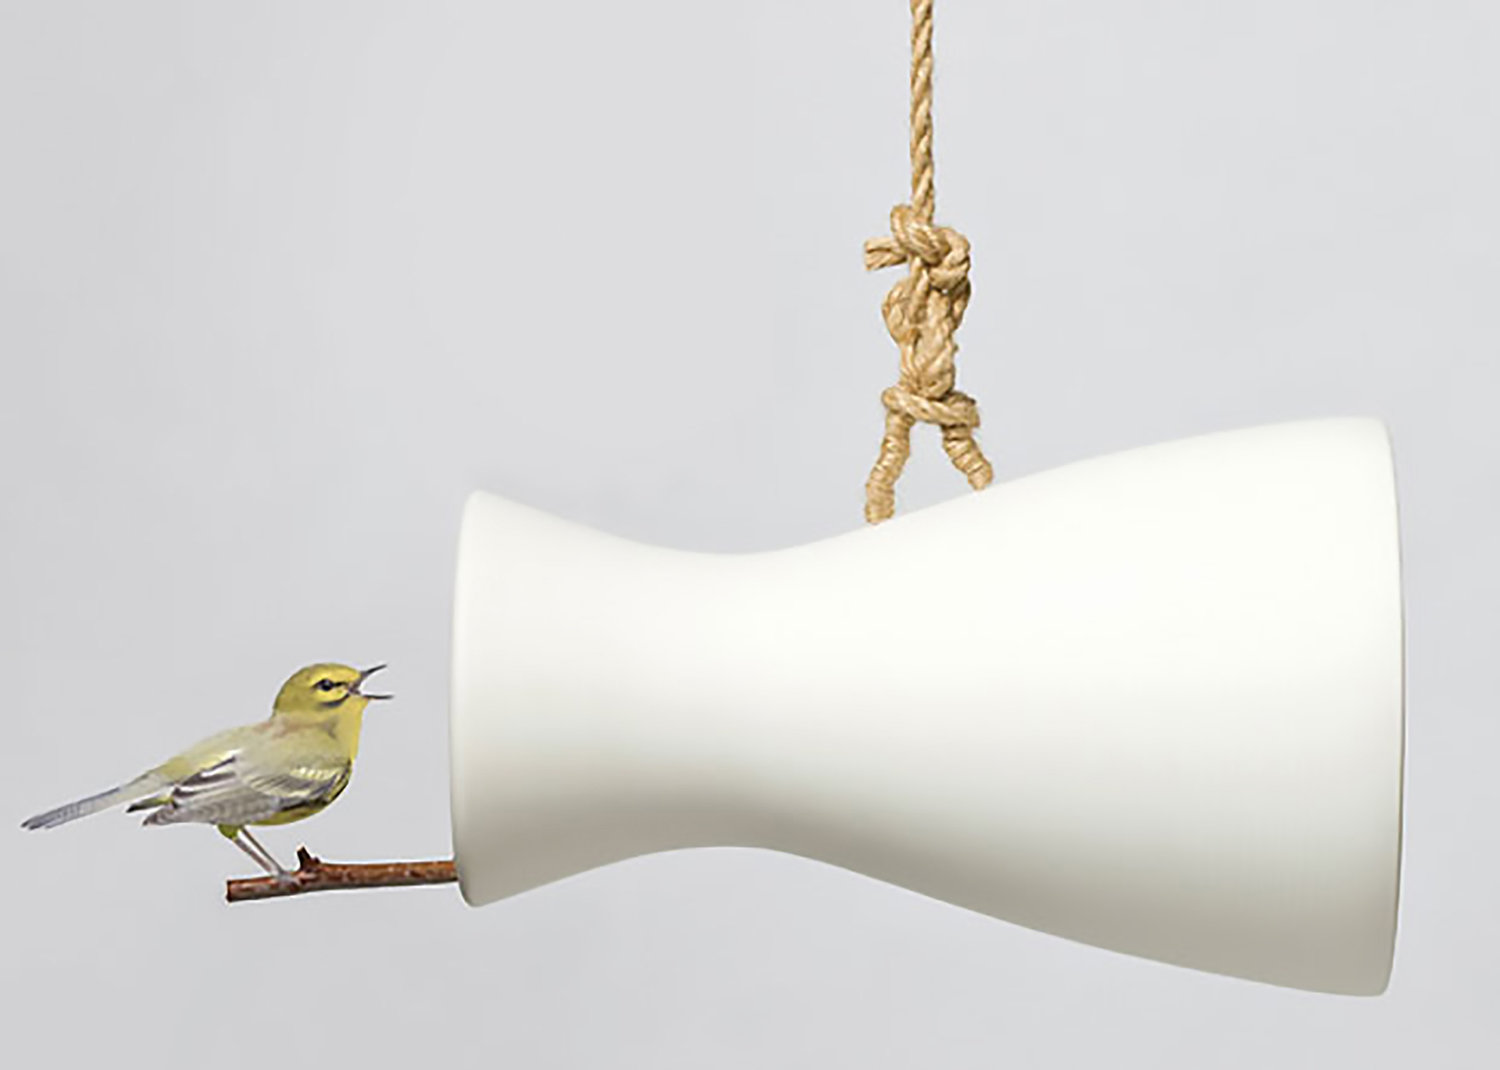 Megaphone for Feathered Friends Designed by Eun Ji Lee